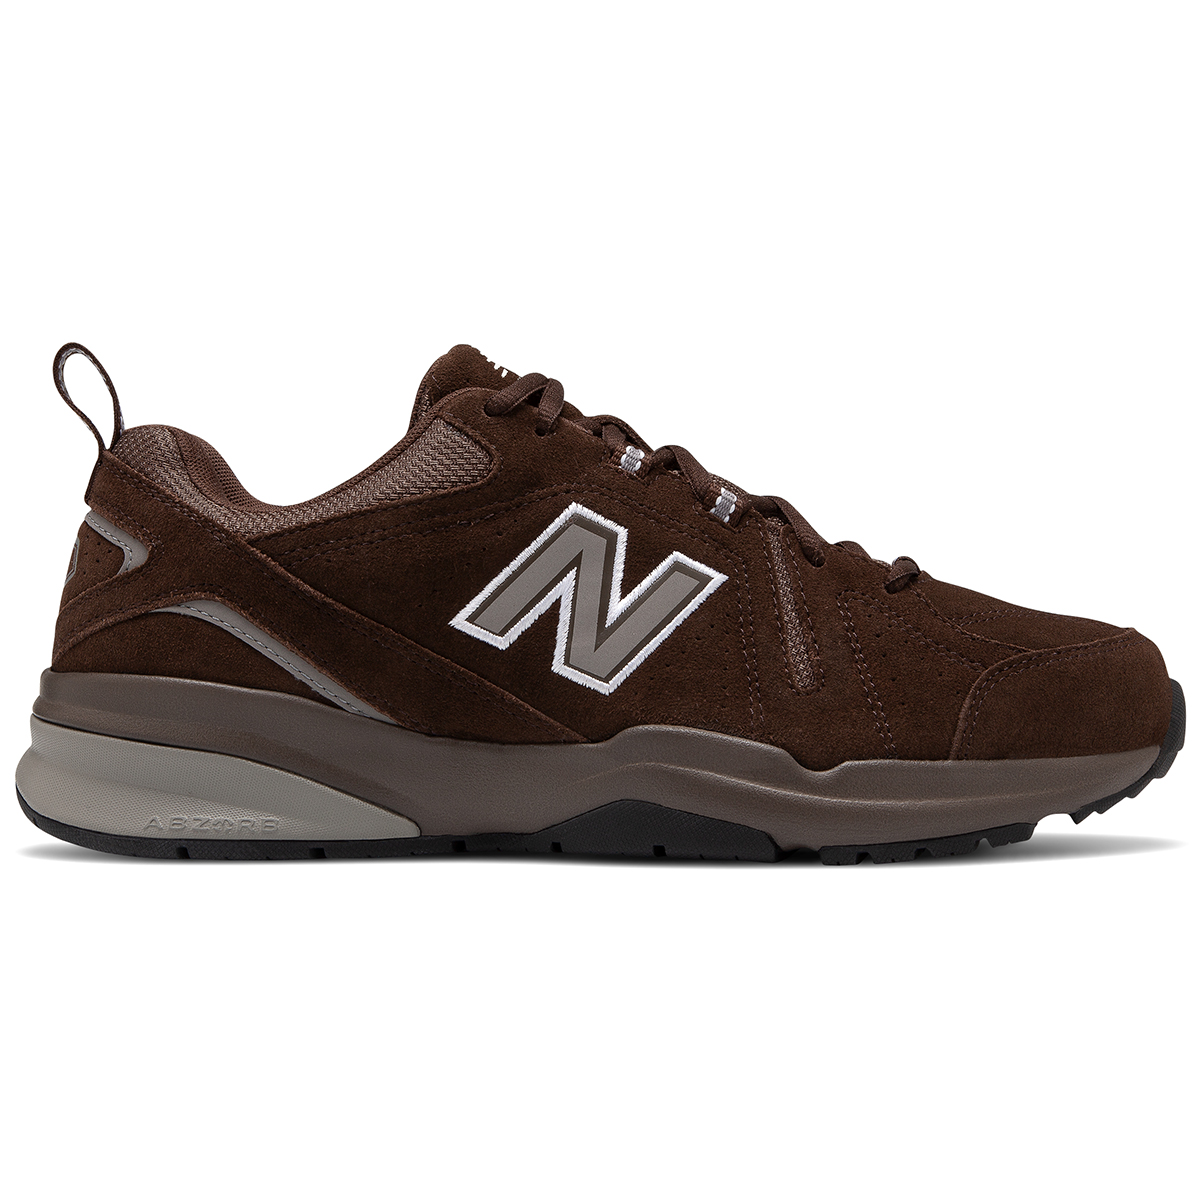 New Balance Men's 608V5 Training Shoes, Medium Width - Brown, 8